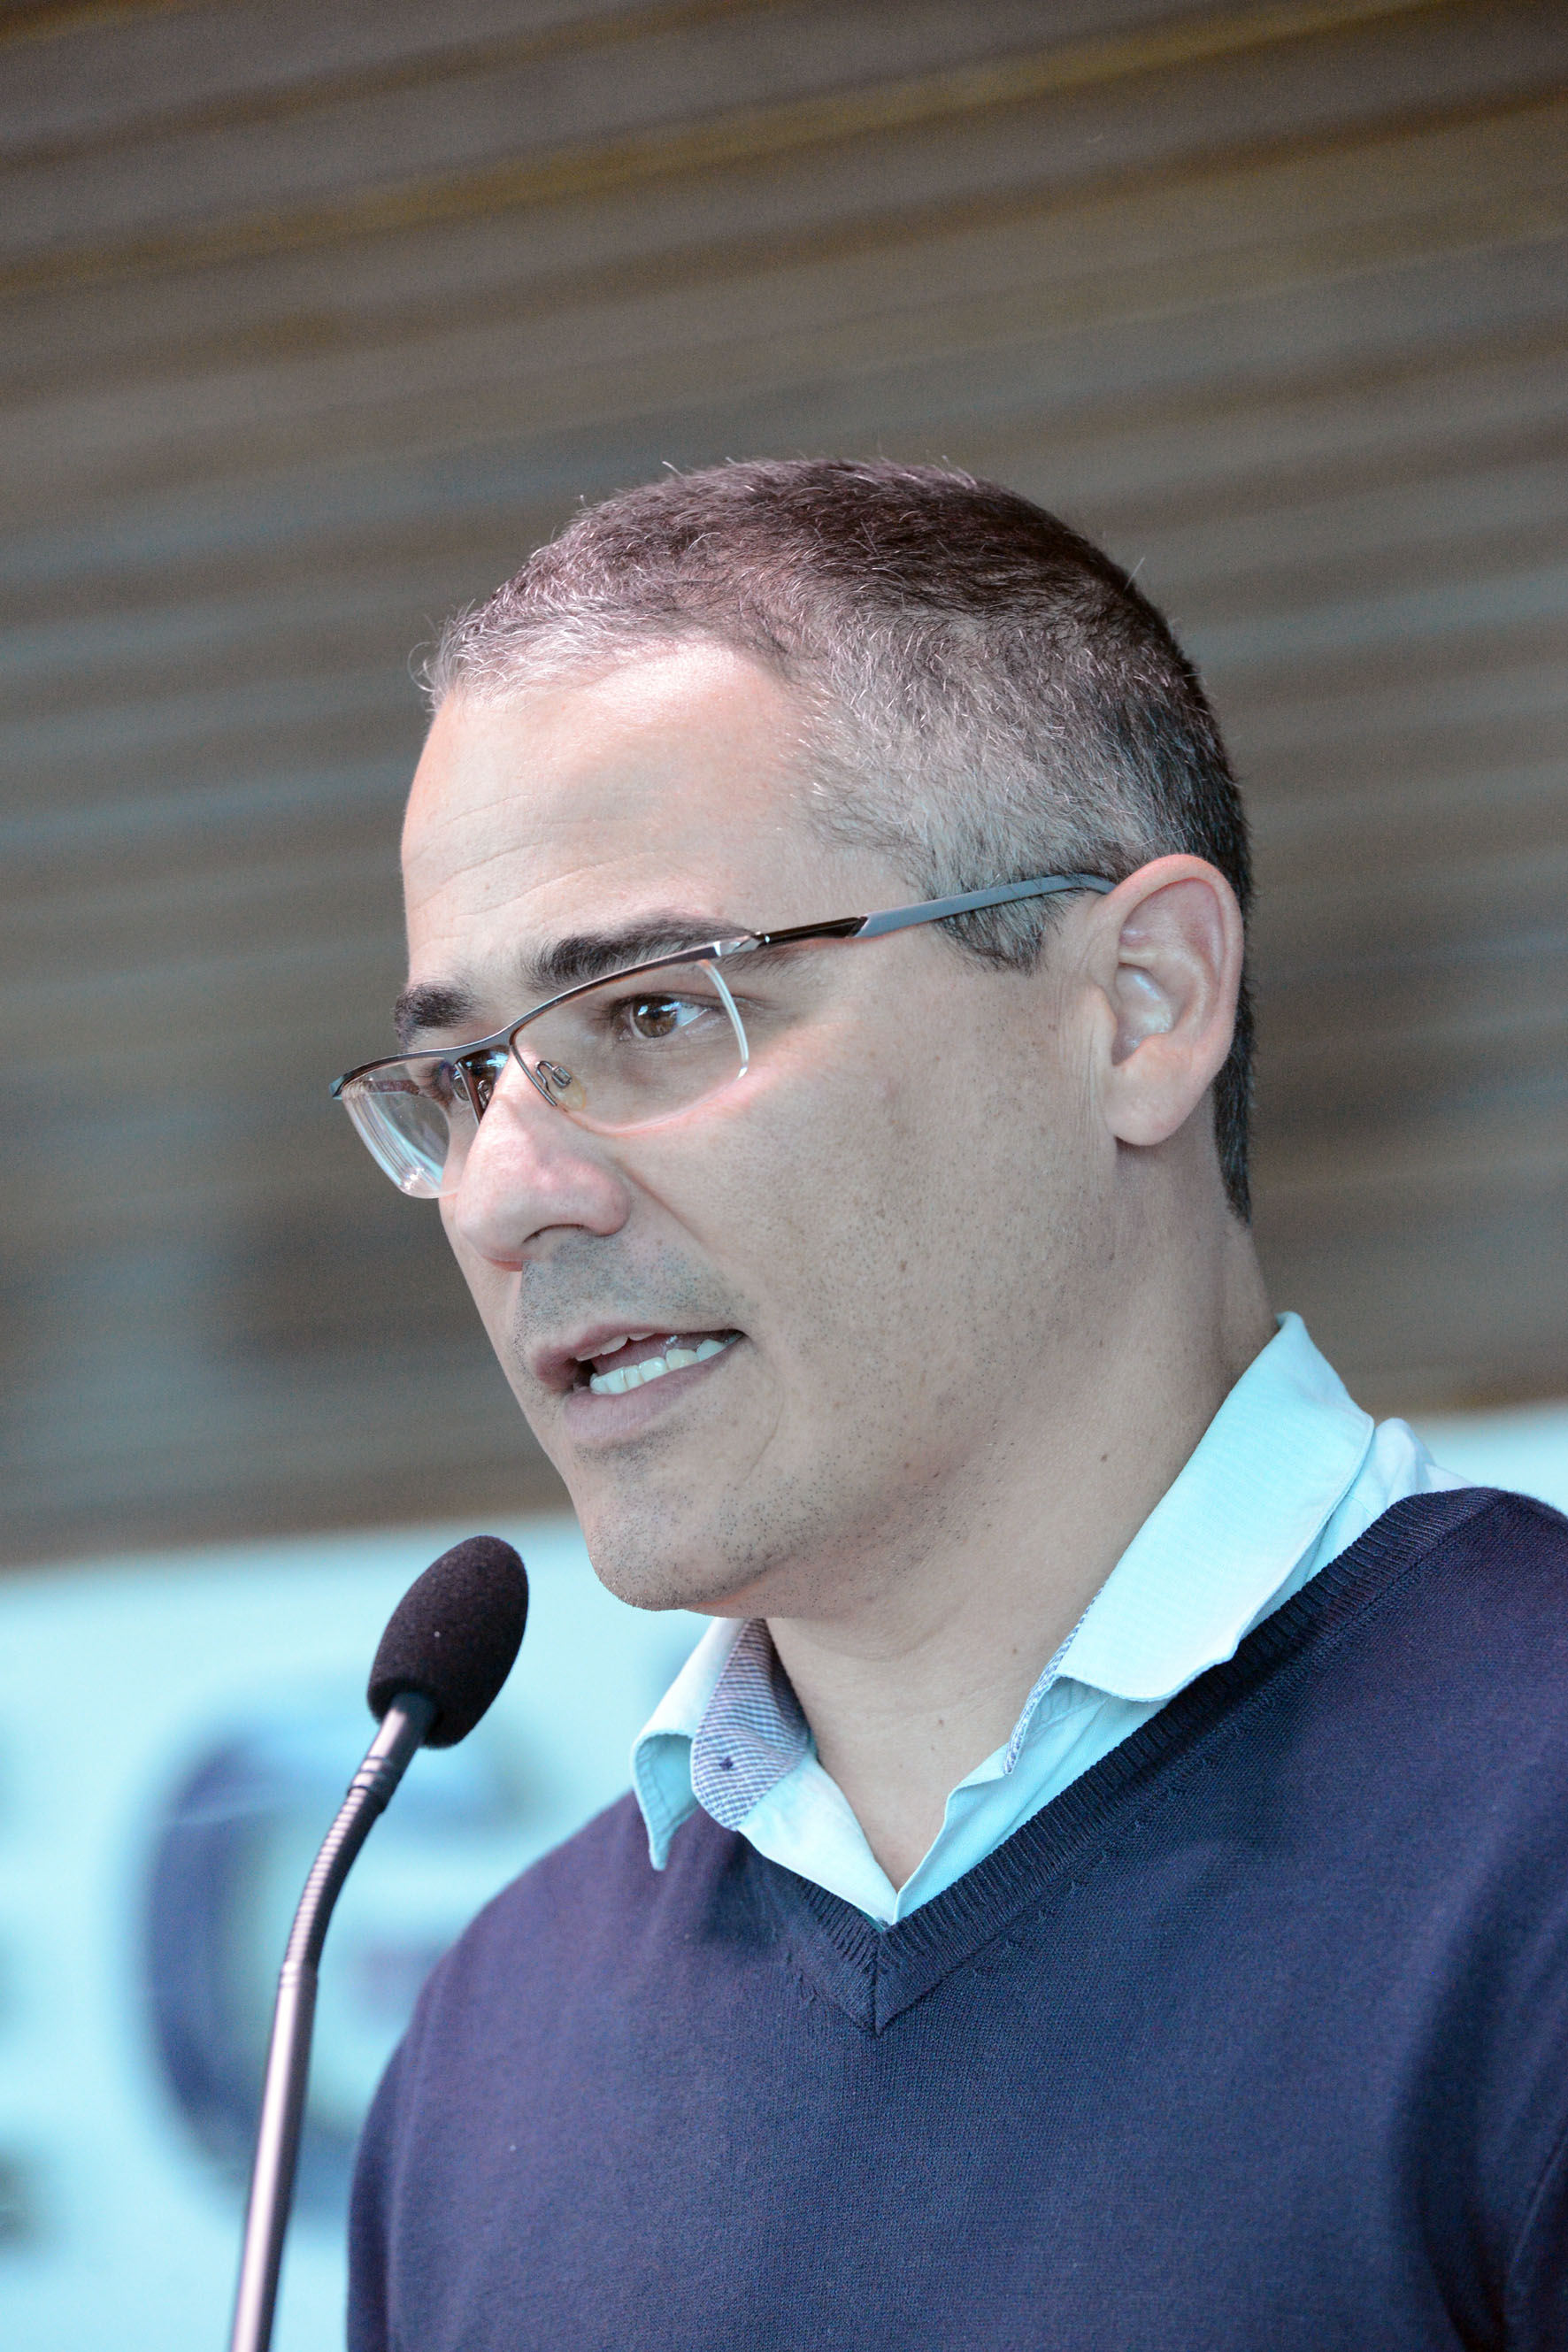 Geovani Carvalho<a style='float:right' href='https://www3.al.sp.gov.br/repositorio/noticia/N-06-2018/fg224942.jpg' target=_blank><img src='/_img/material-file-download-white.png' width='14px' alt='Clique para baixar a imagem'></a>